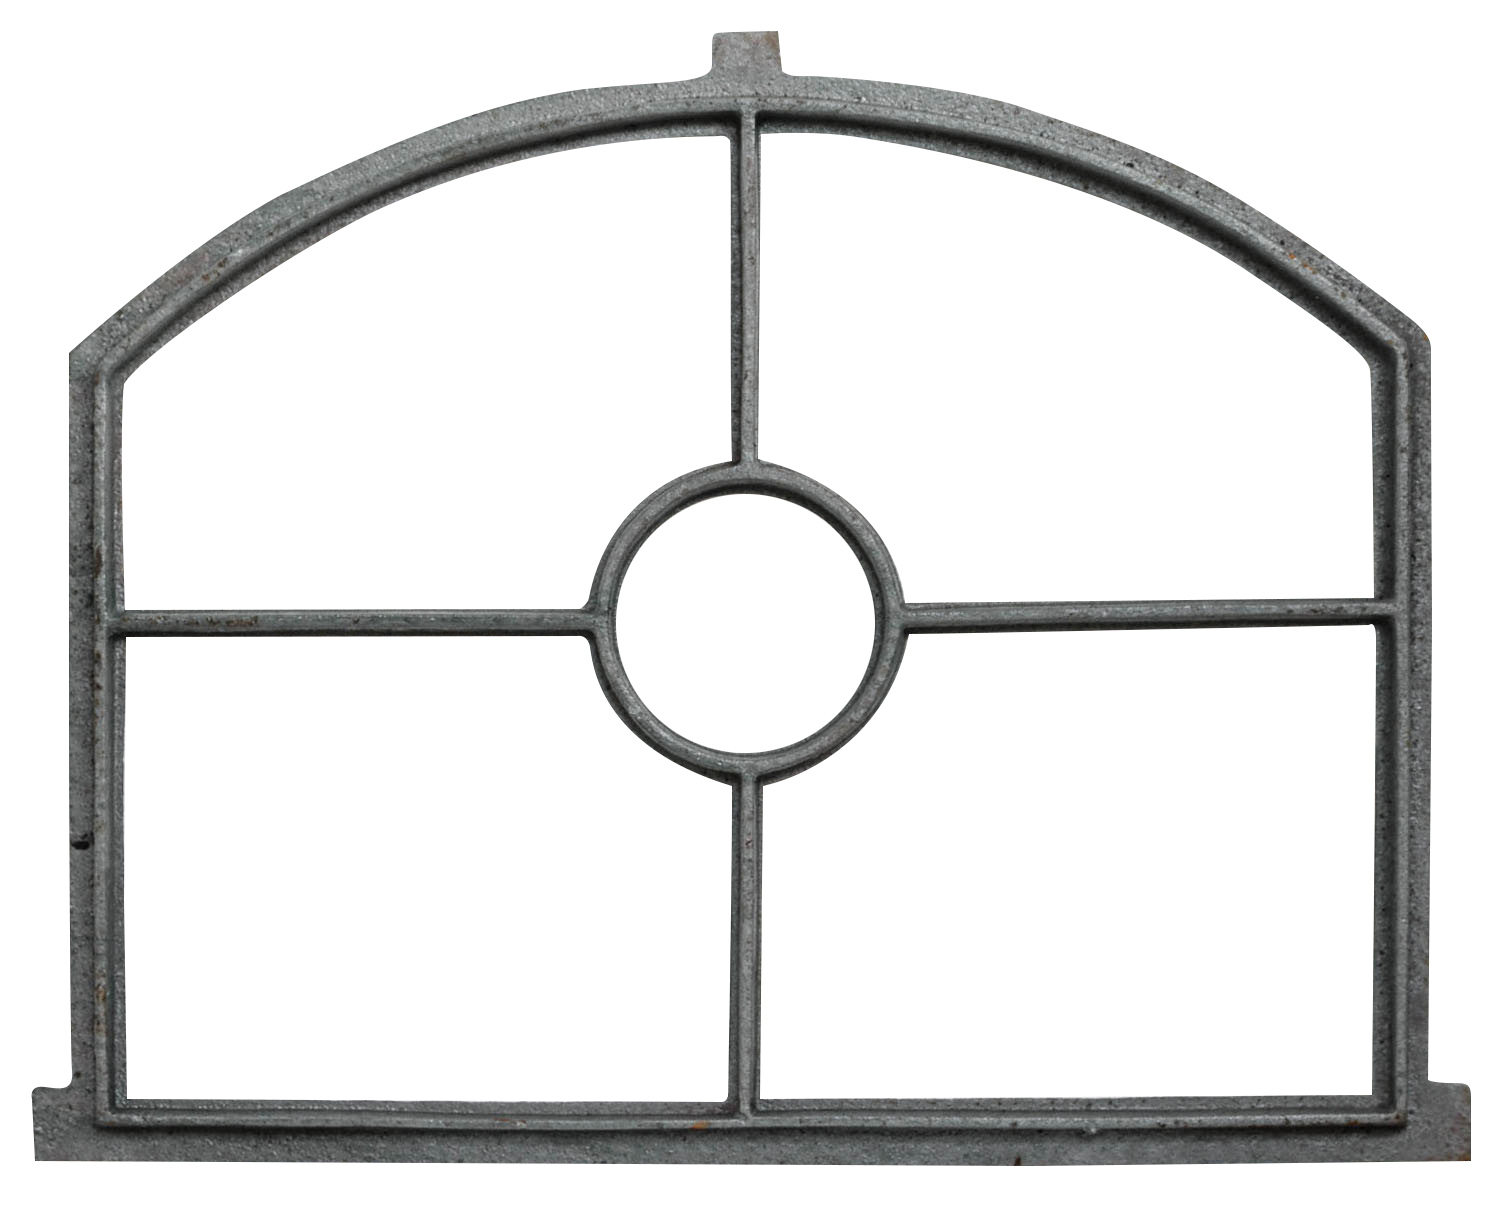 1500x1215 Barn Window Frame In An Antique Style Cast Iron